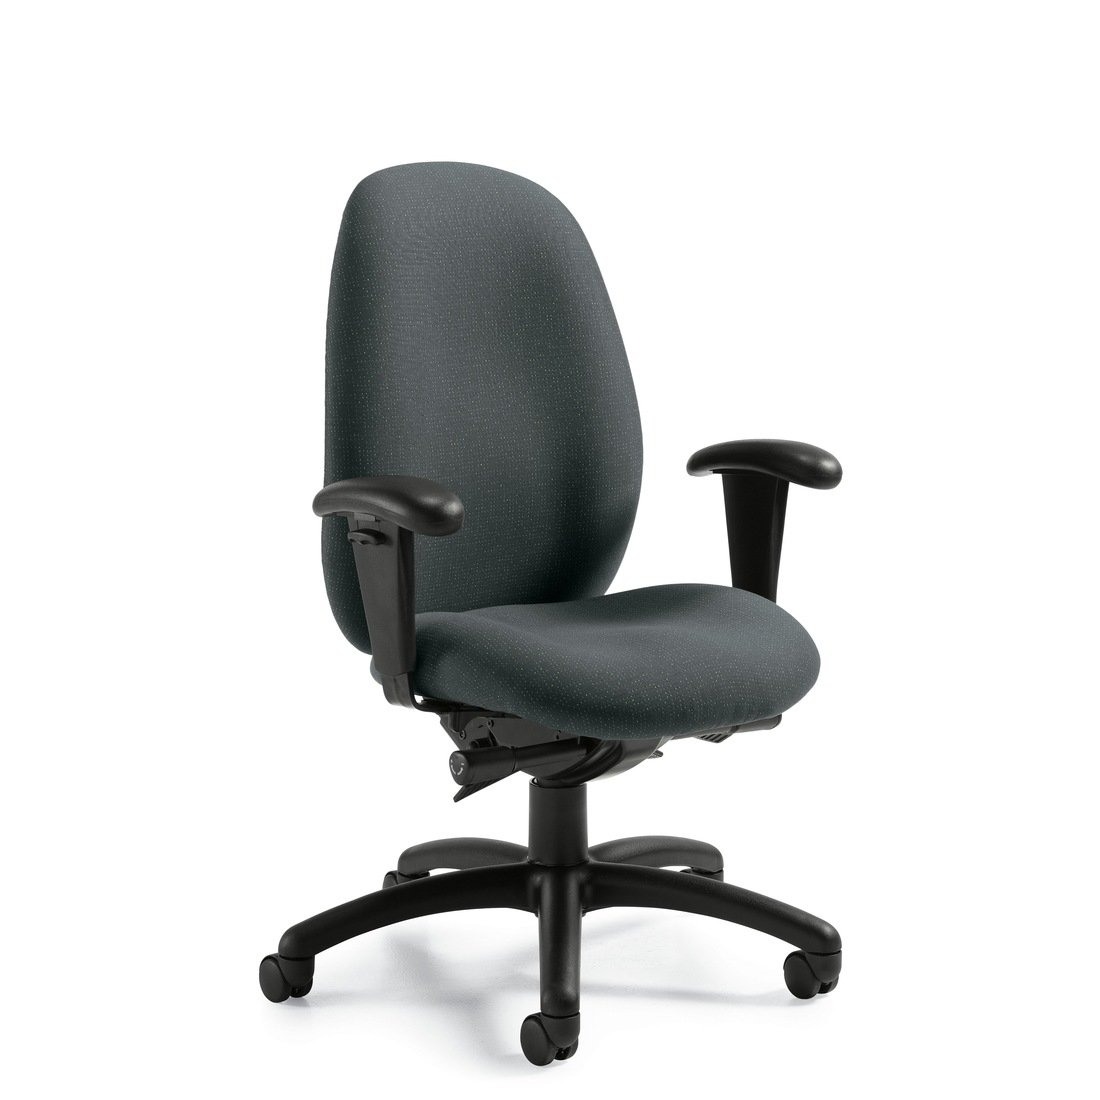 Malaga high back synchro-tilter chair, model 3140-0. This chair has been placed on a white background.